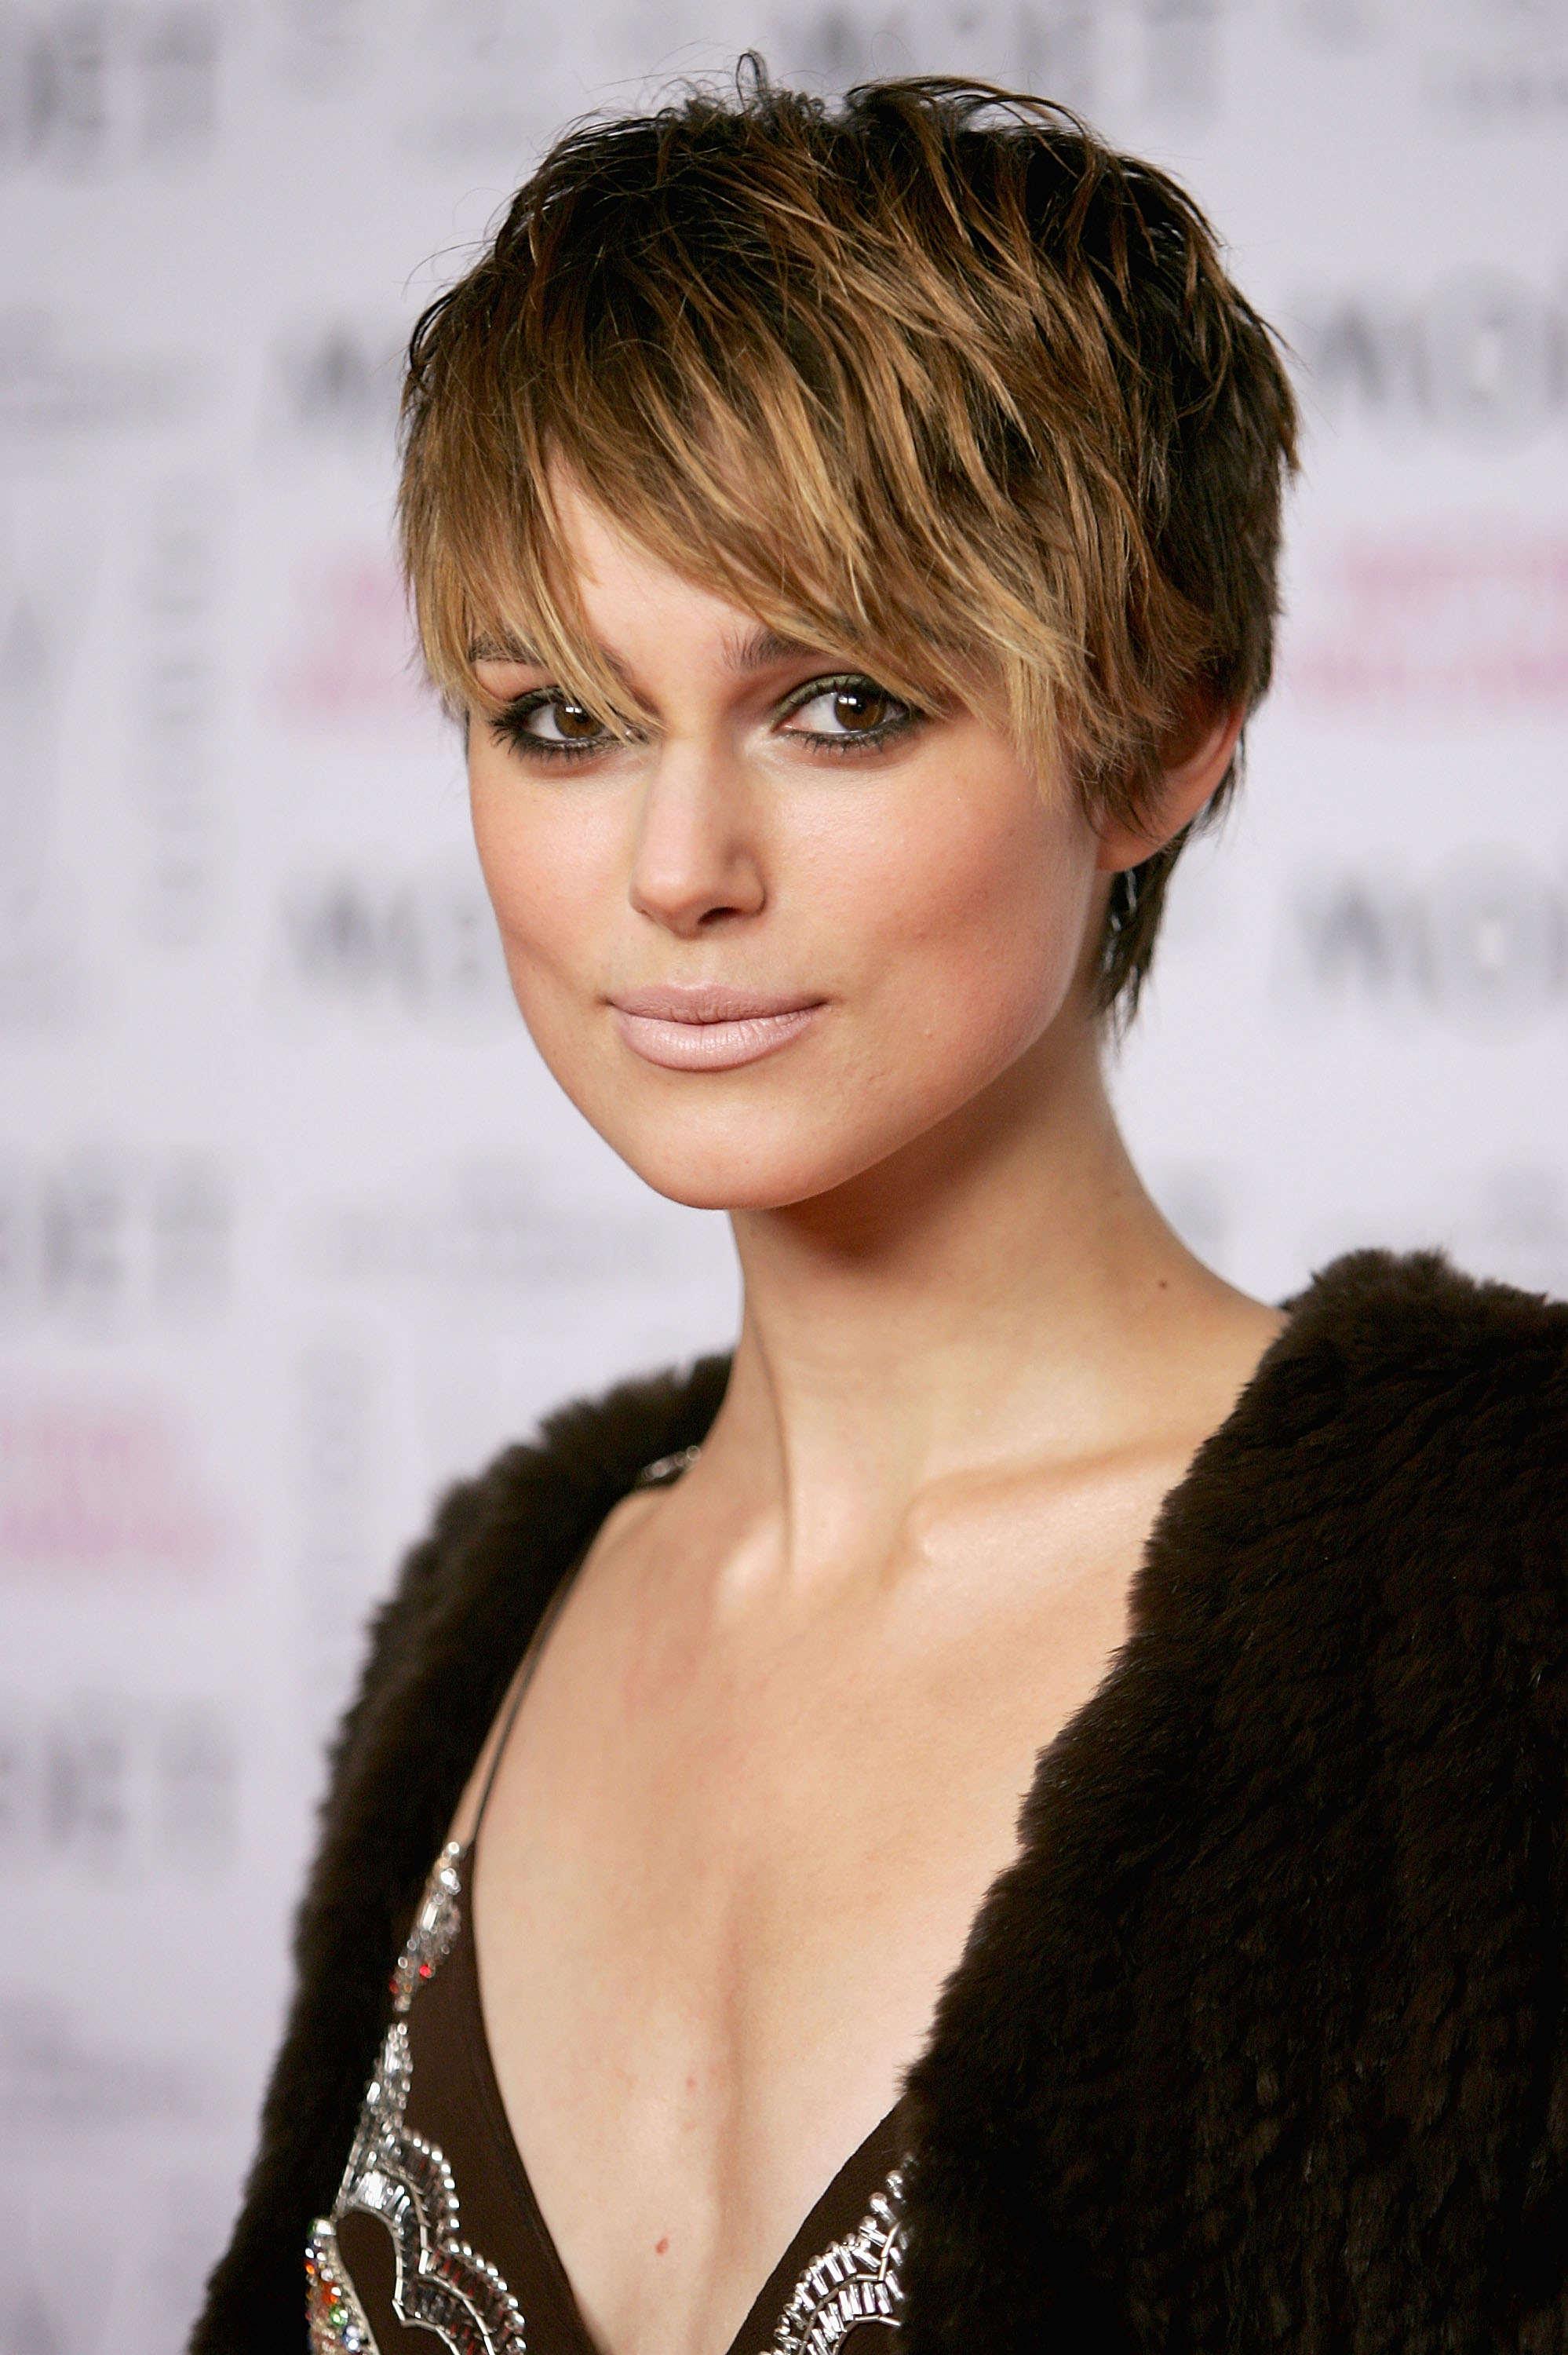 Short Short Hair For Women hairstyle ideas